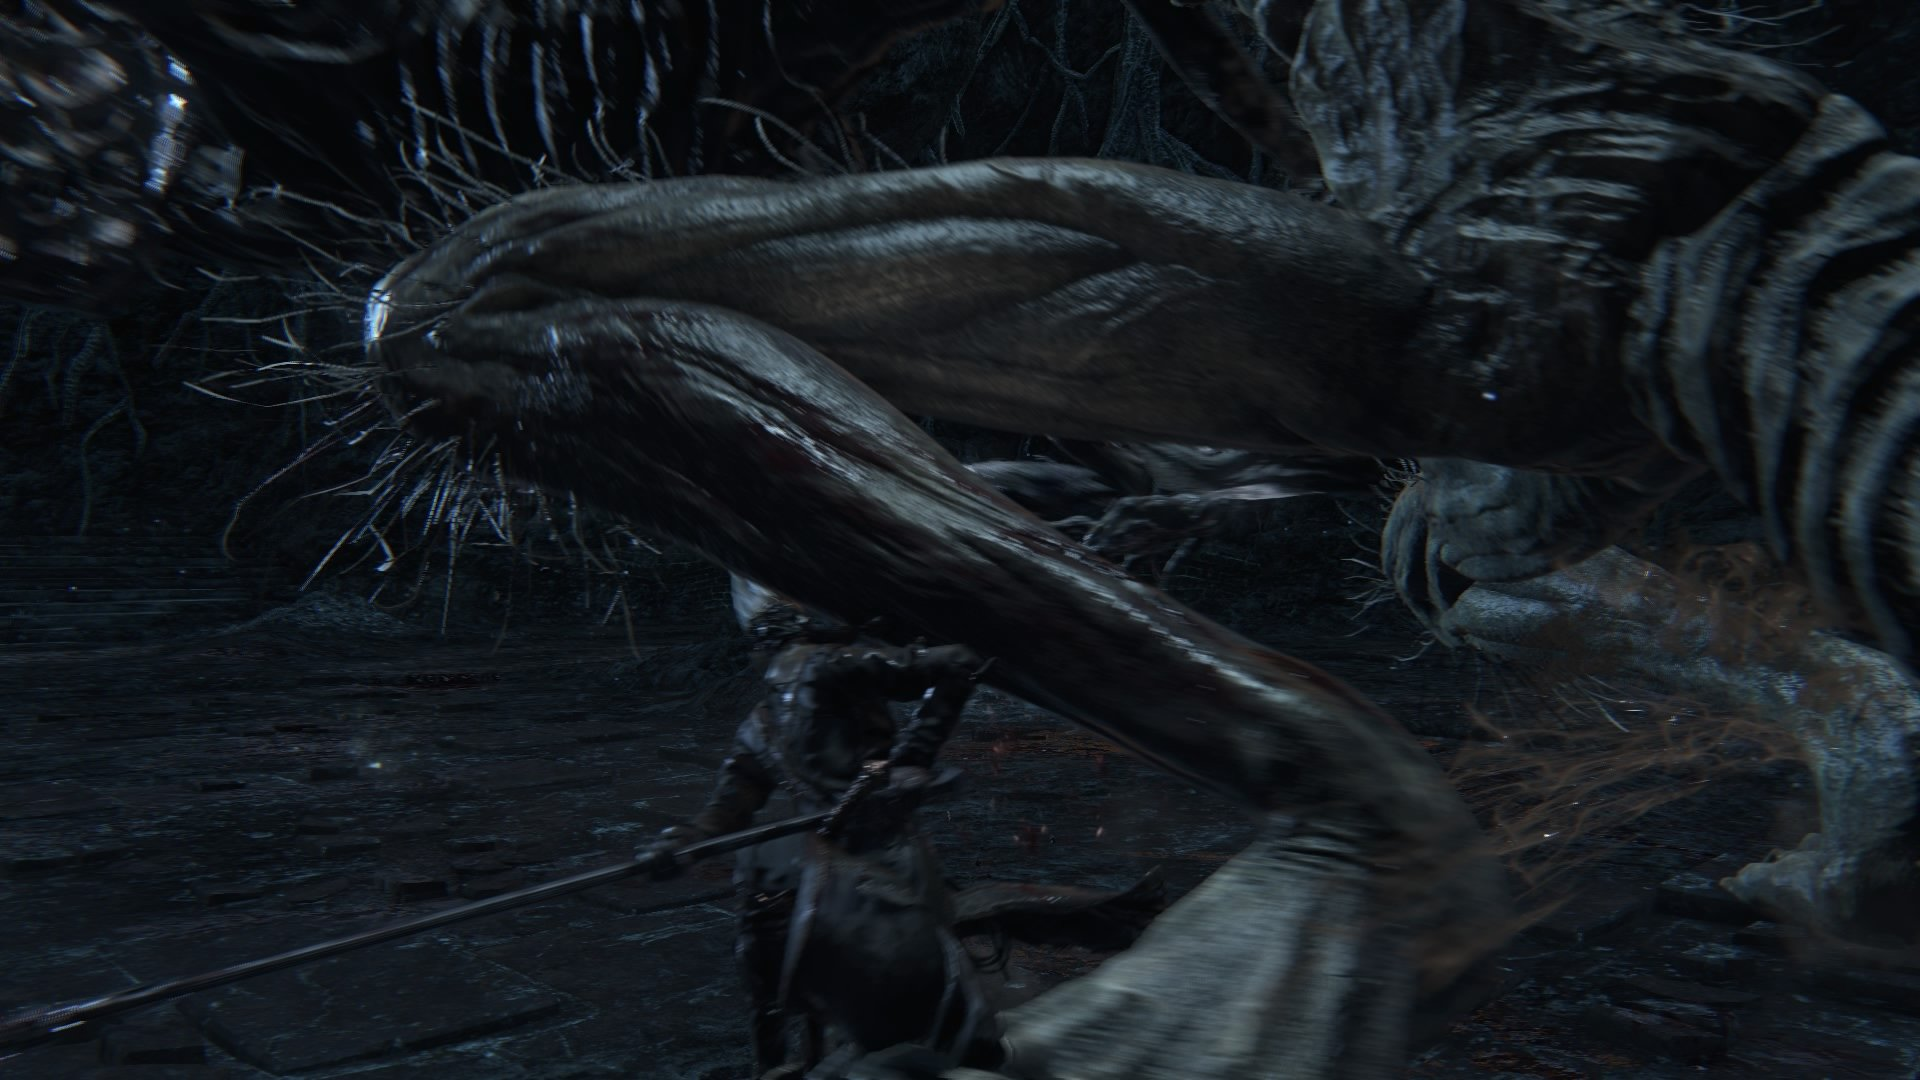 Blood, Amygdala's Leg, Isz